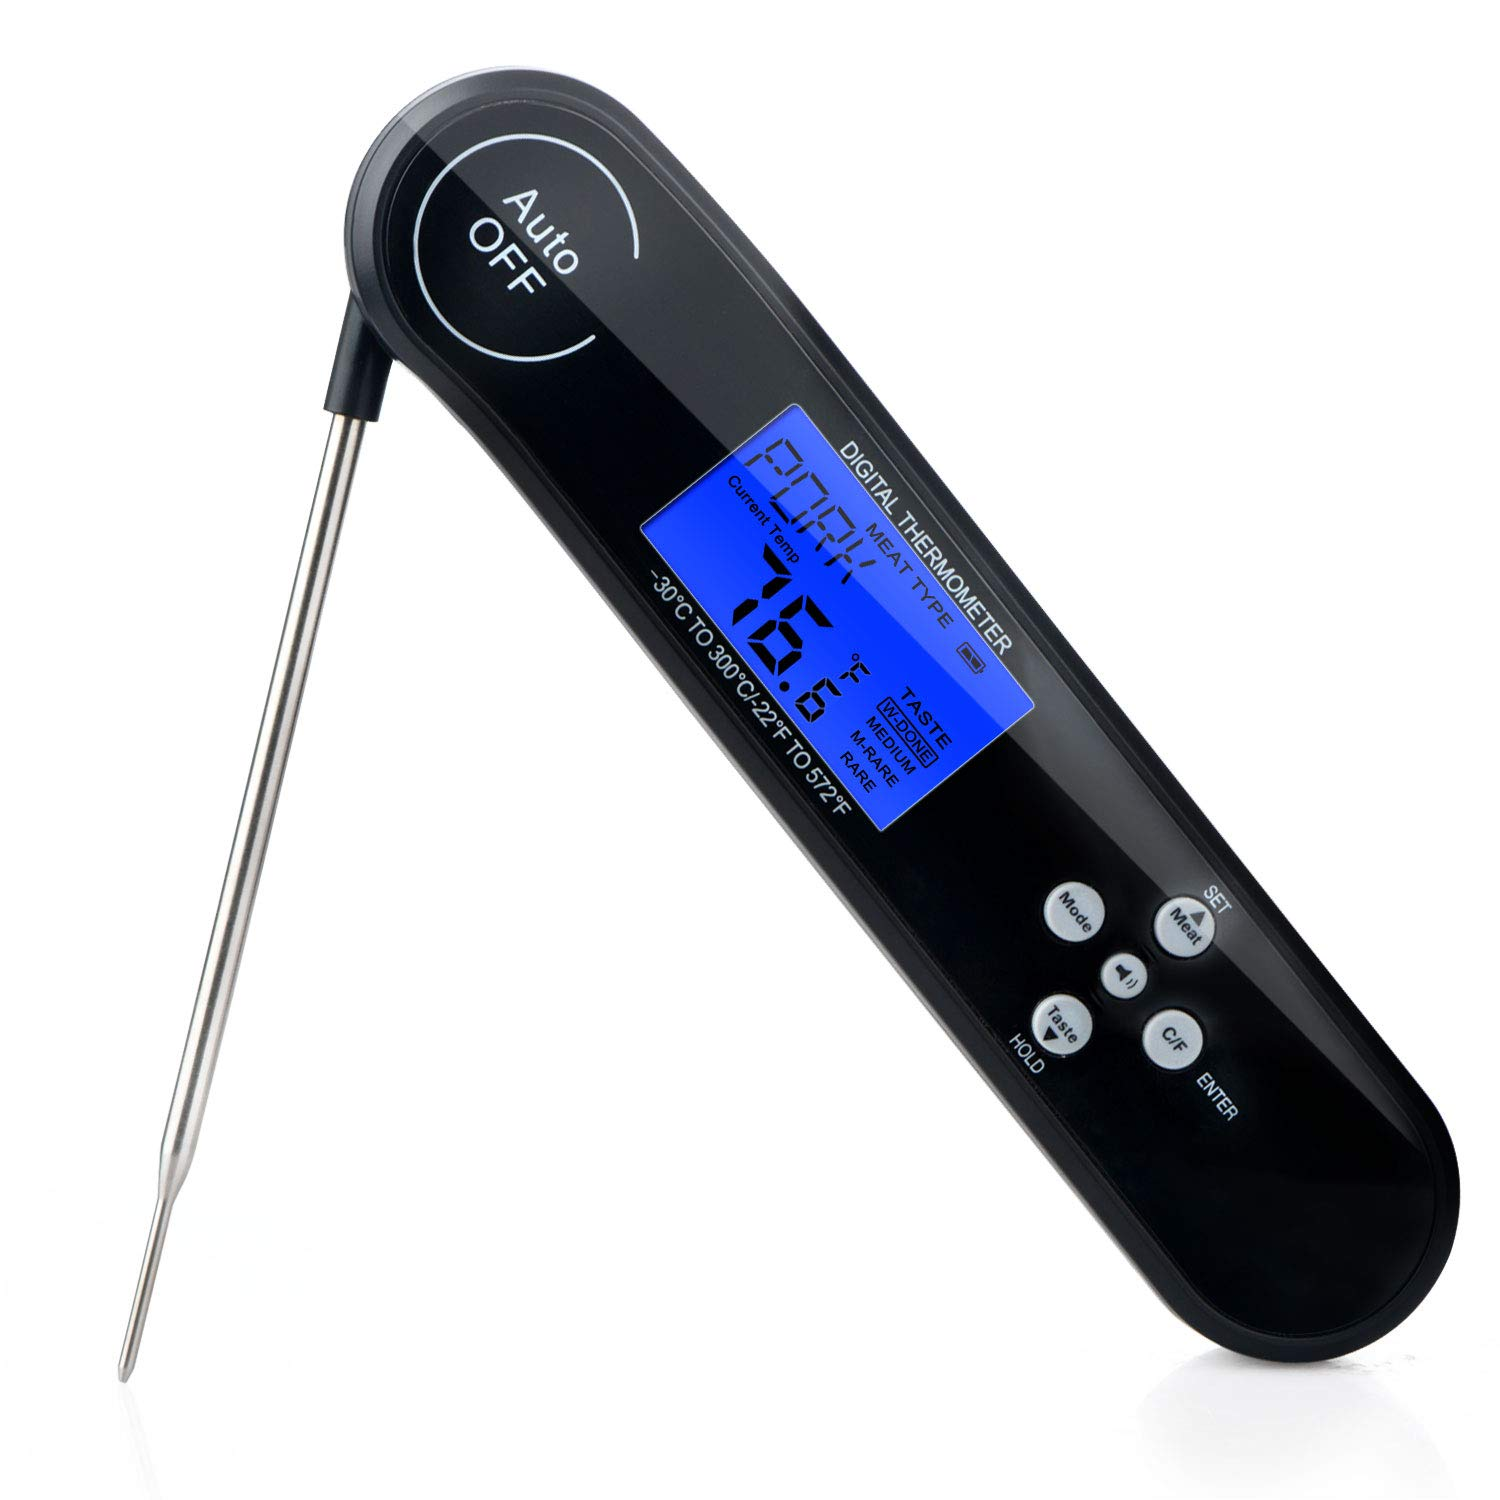 Instant Read Meat Thermometer,Super Fast Voice Broadcast Digital Thermometer for Food, Kitchen, Cooking BBQ, Grill